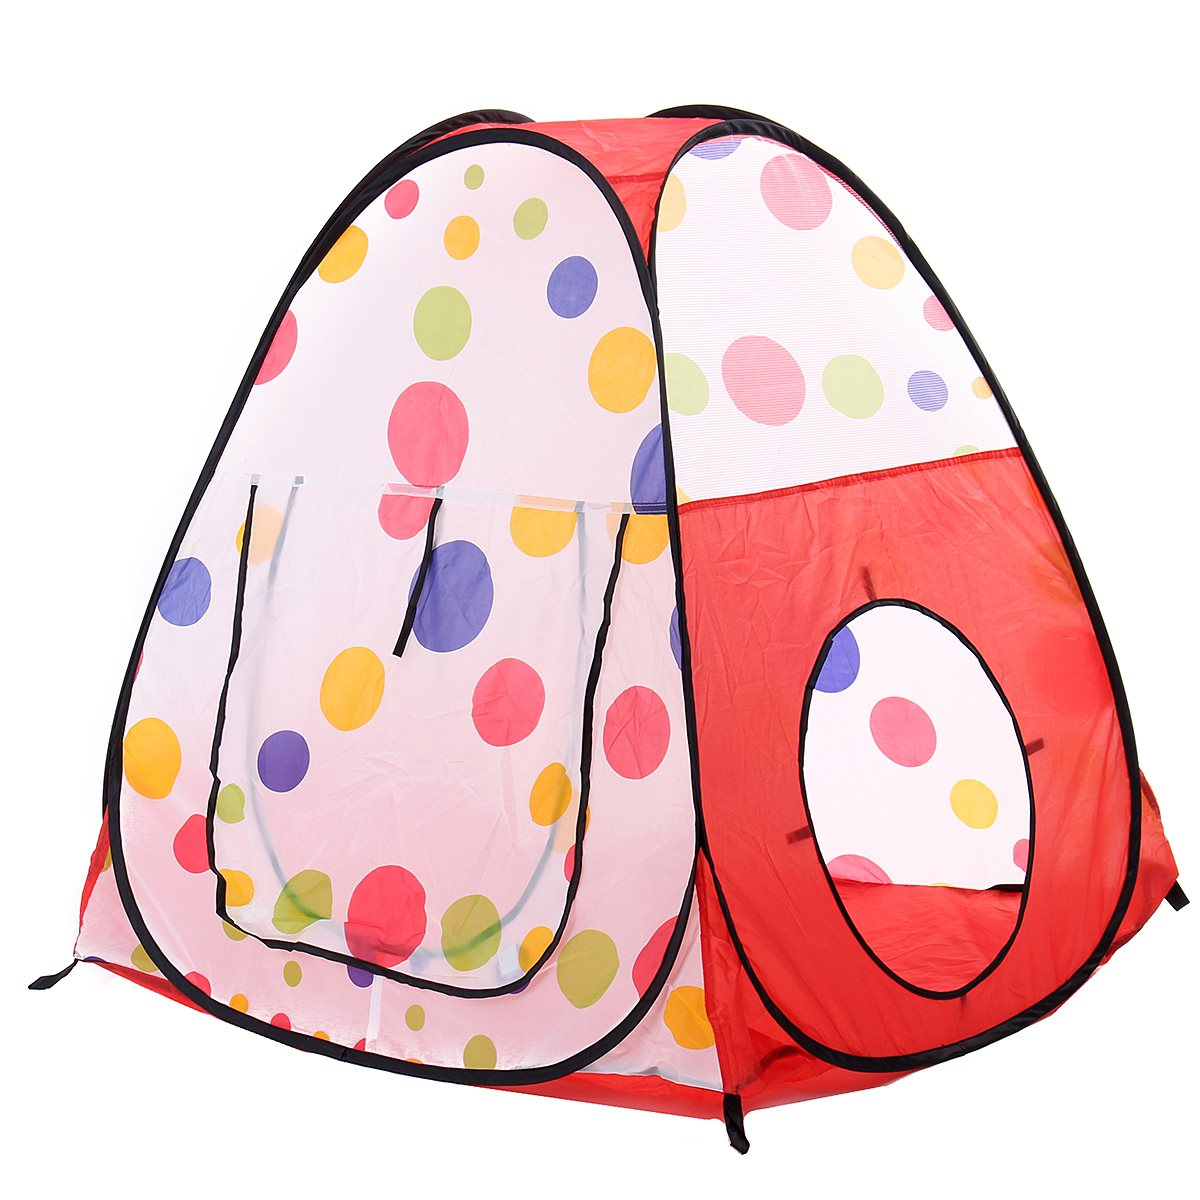 3 in 1 Pop Up Play Tent Playhouse Tunnel Ball Pit Baby Play Gift Kids Indoor Outdoor Playhouse Kids Play Gaming Toys-in Toy Tents from Toys u0026 Hobbies on ...  sc 1 st  AliExpress.com & 3 in 1 Pop Up Play Tent Playhouse Tunnel Ball Pit Baby Play Gift ...